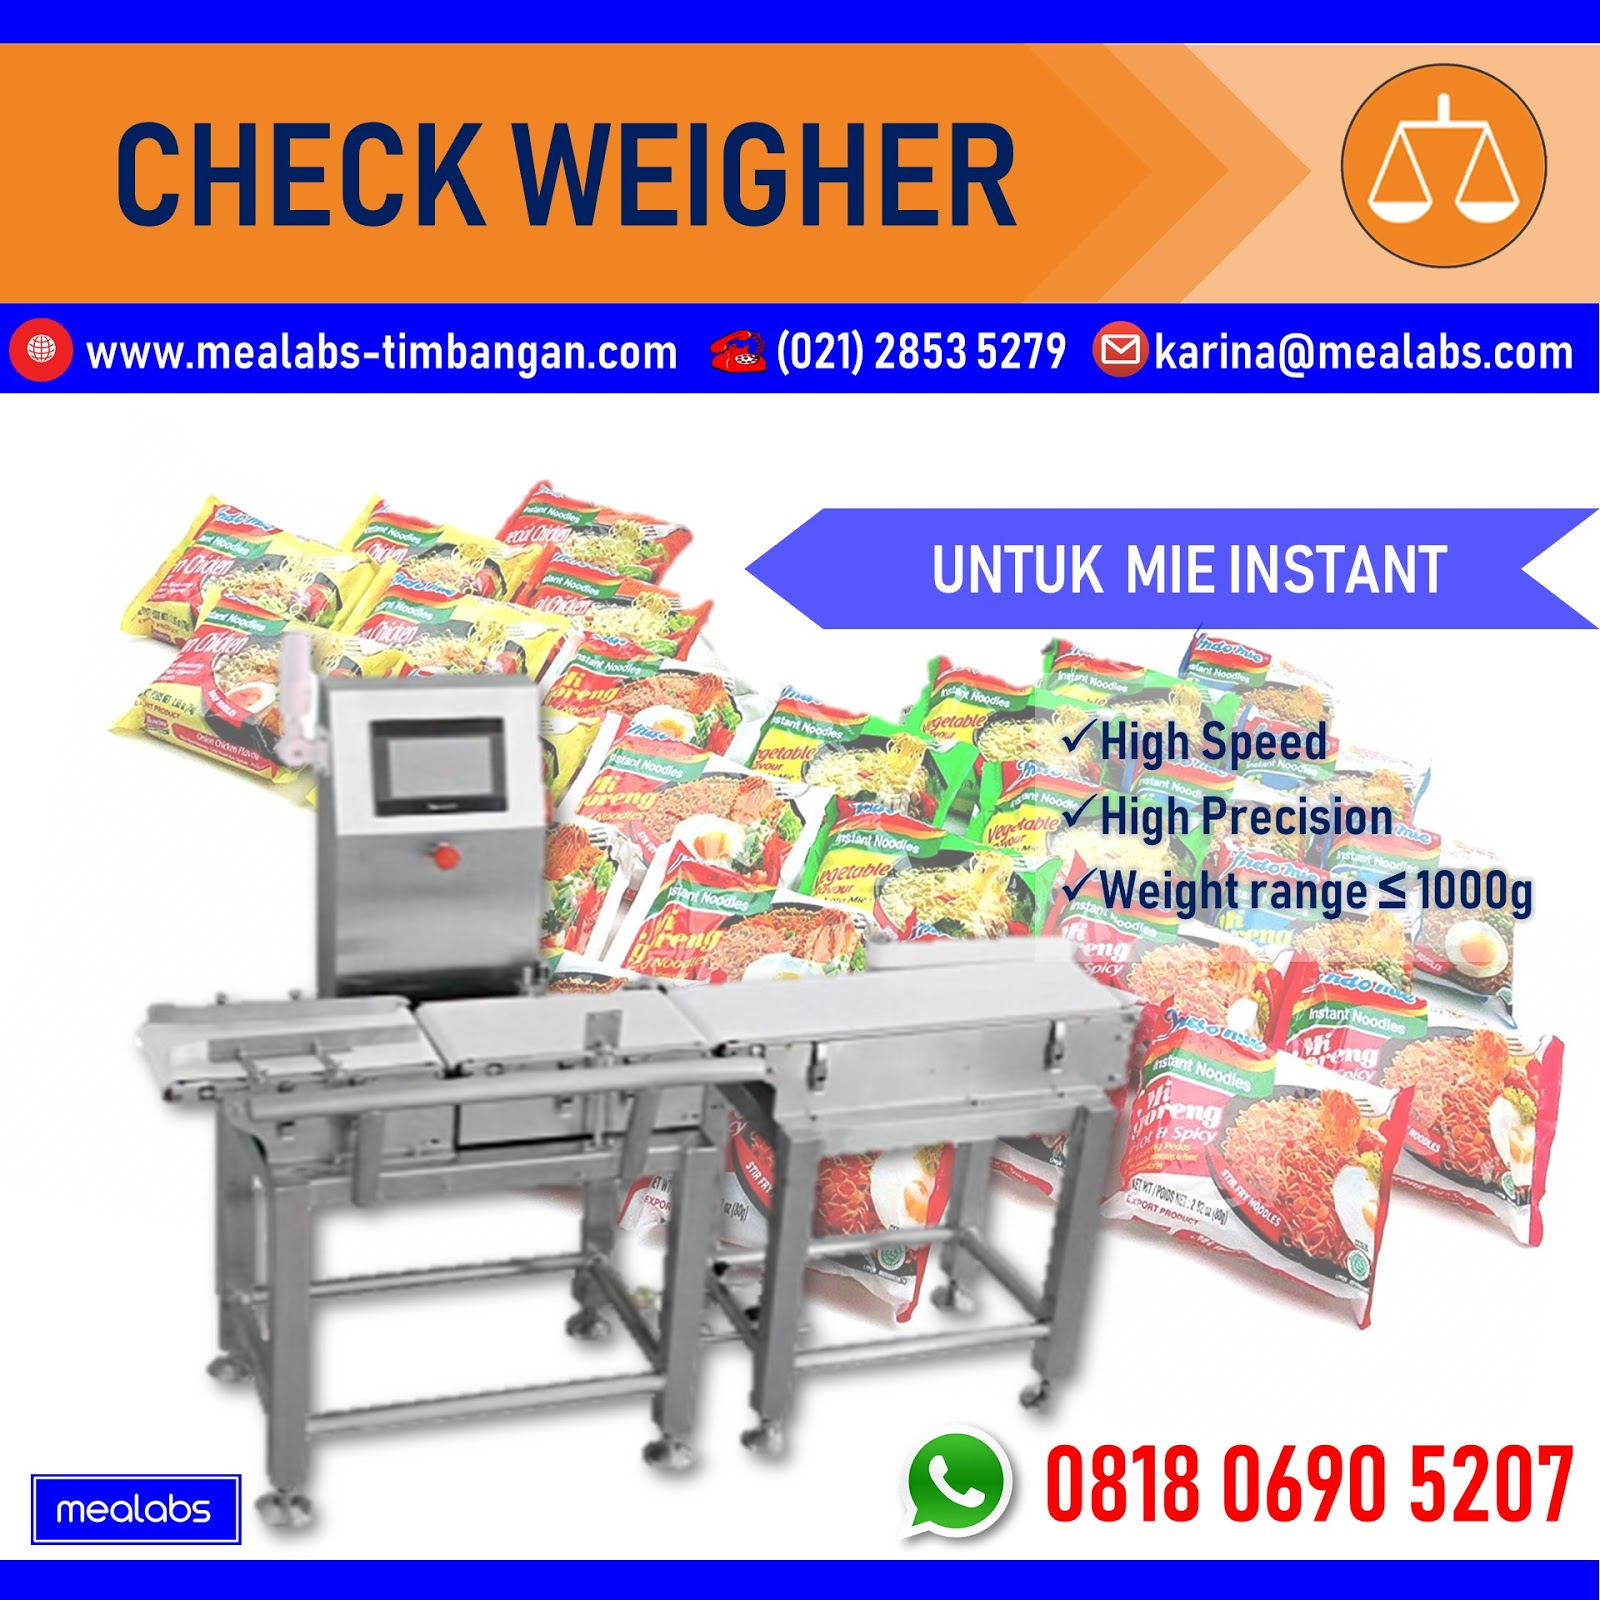 Checkweigher Mie Instant